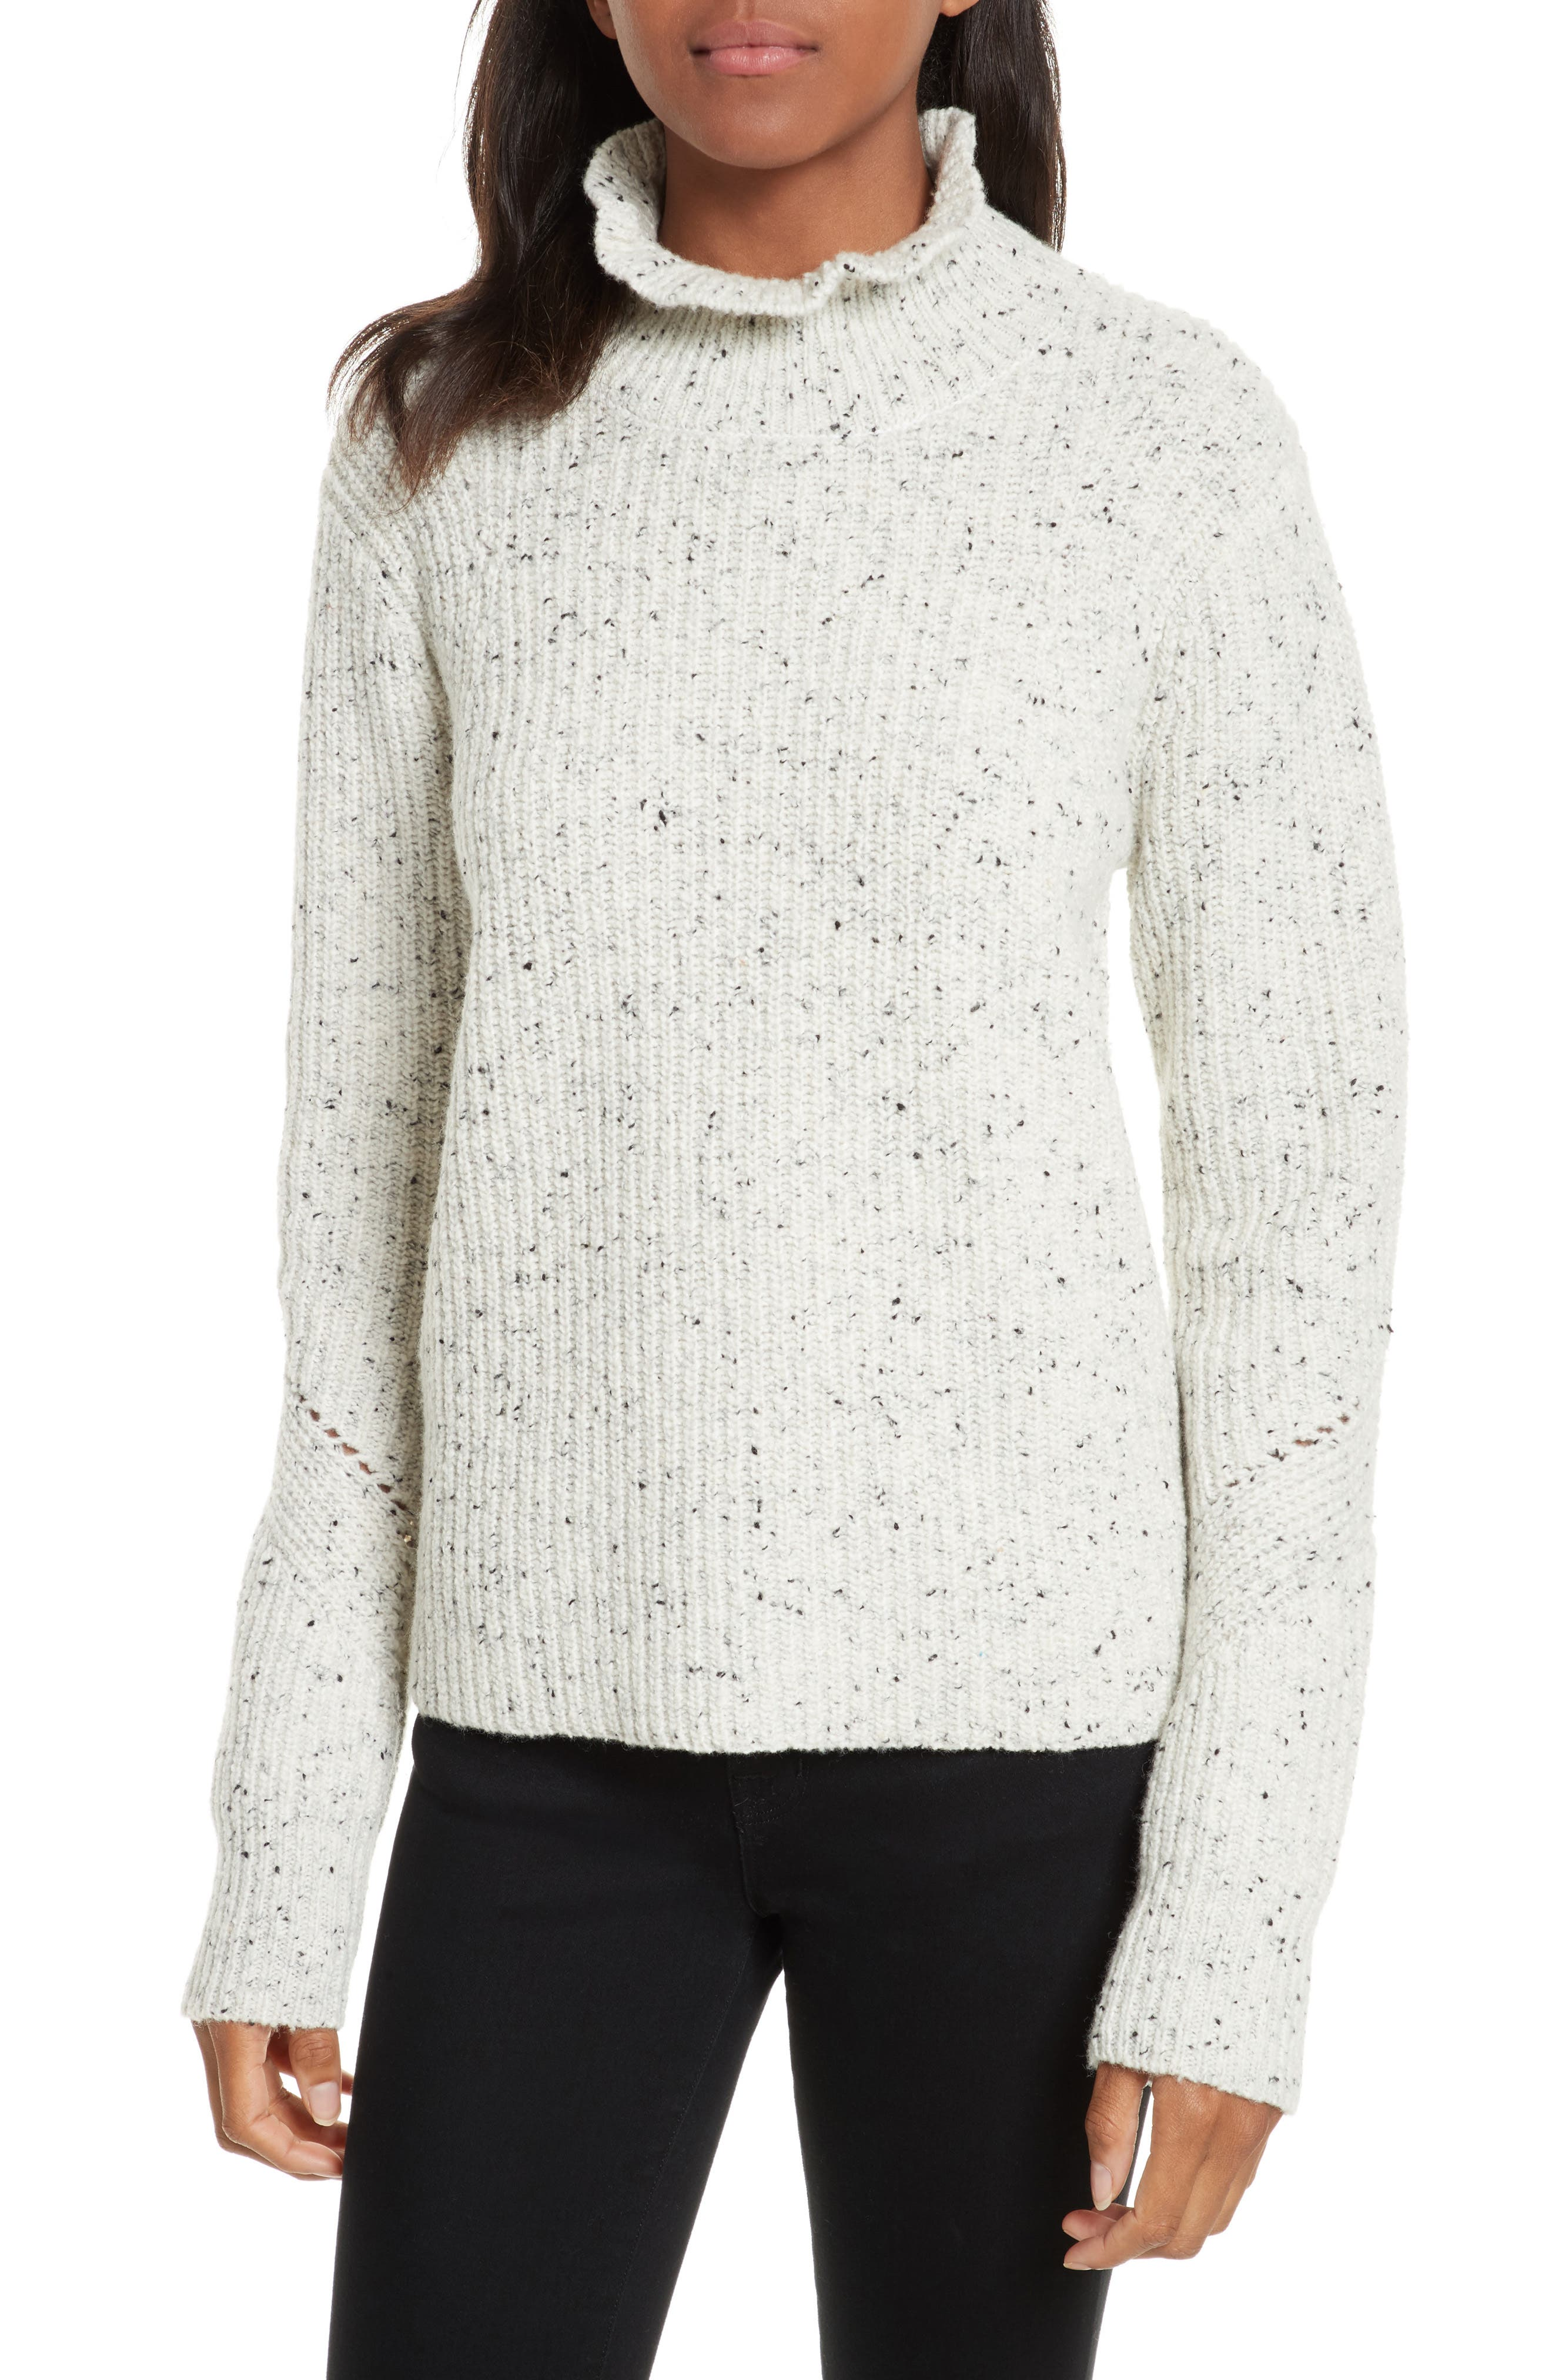 Adaliz Ribbed Ruffle Neck Sweater,                         Main,                         color, Porcelain